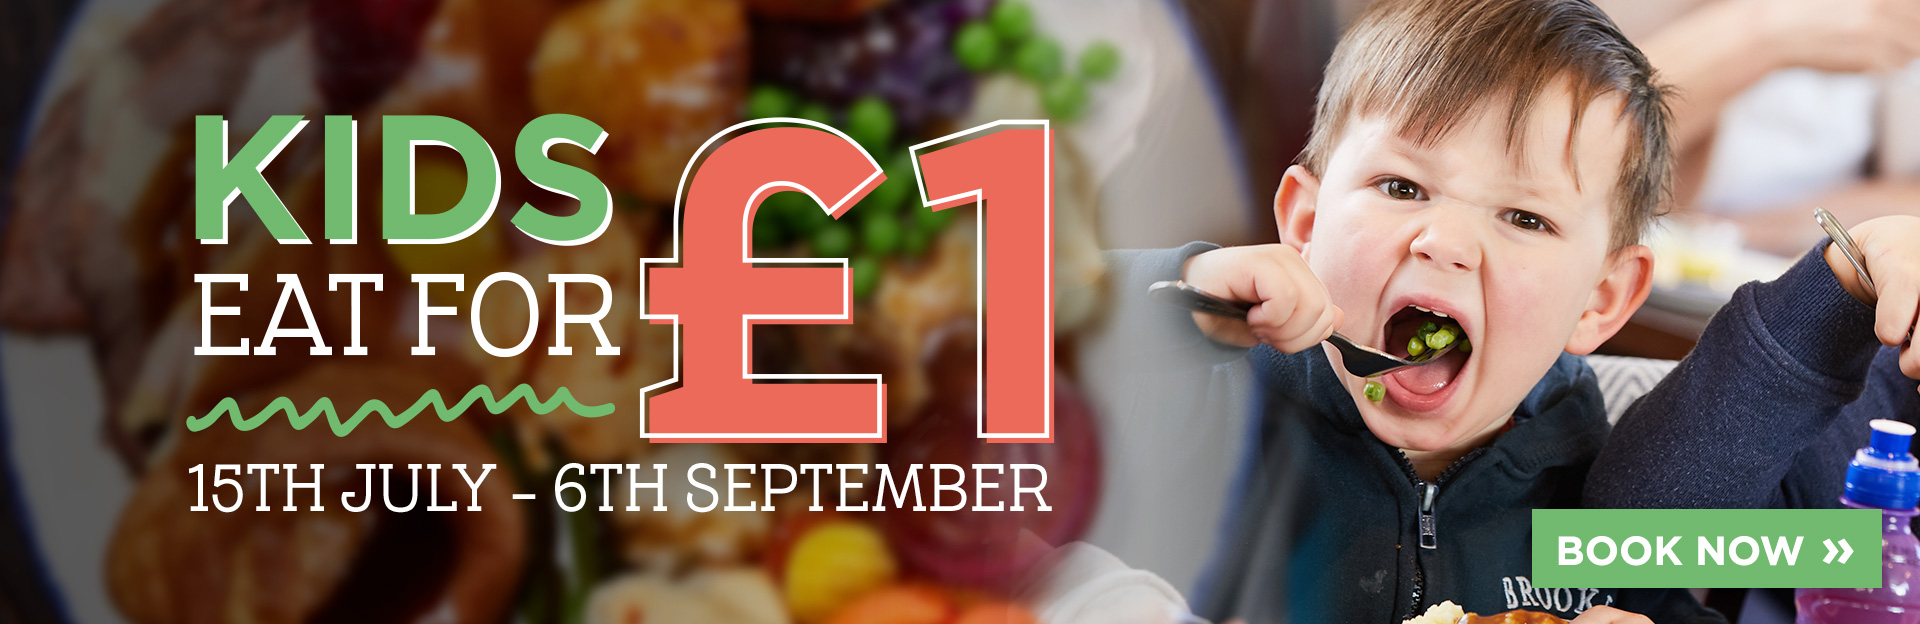 Kids eat for £1 at The Fulling Mill